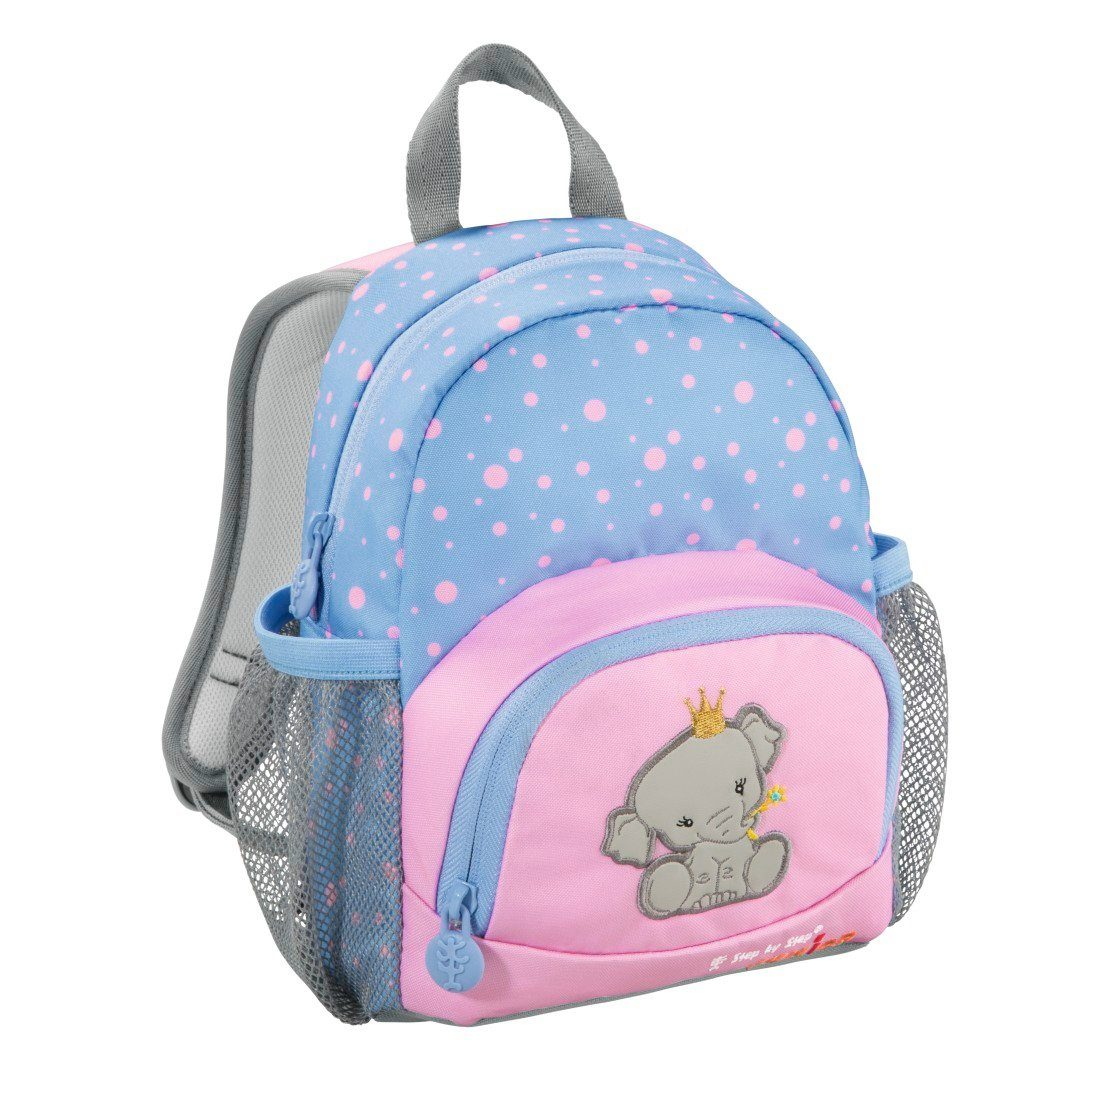 Step by Step JUNIOR Kindergartenrucksack Little Dressy, Little Elephant